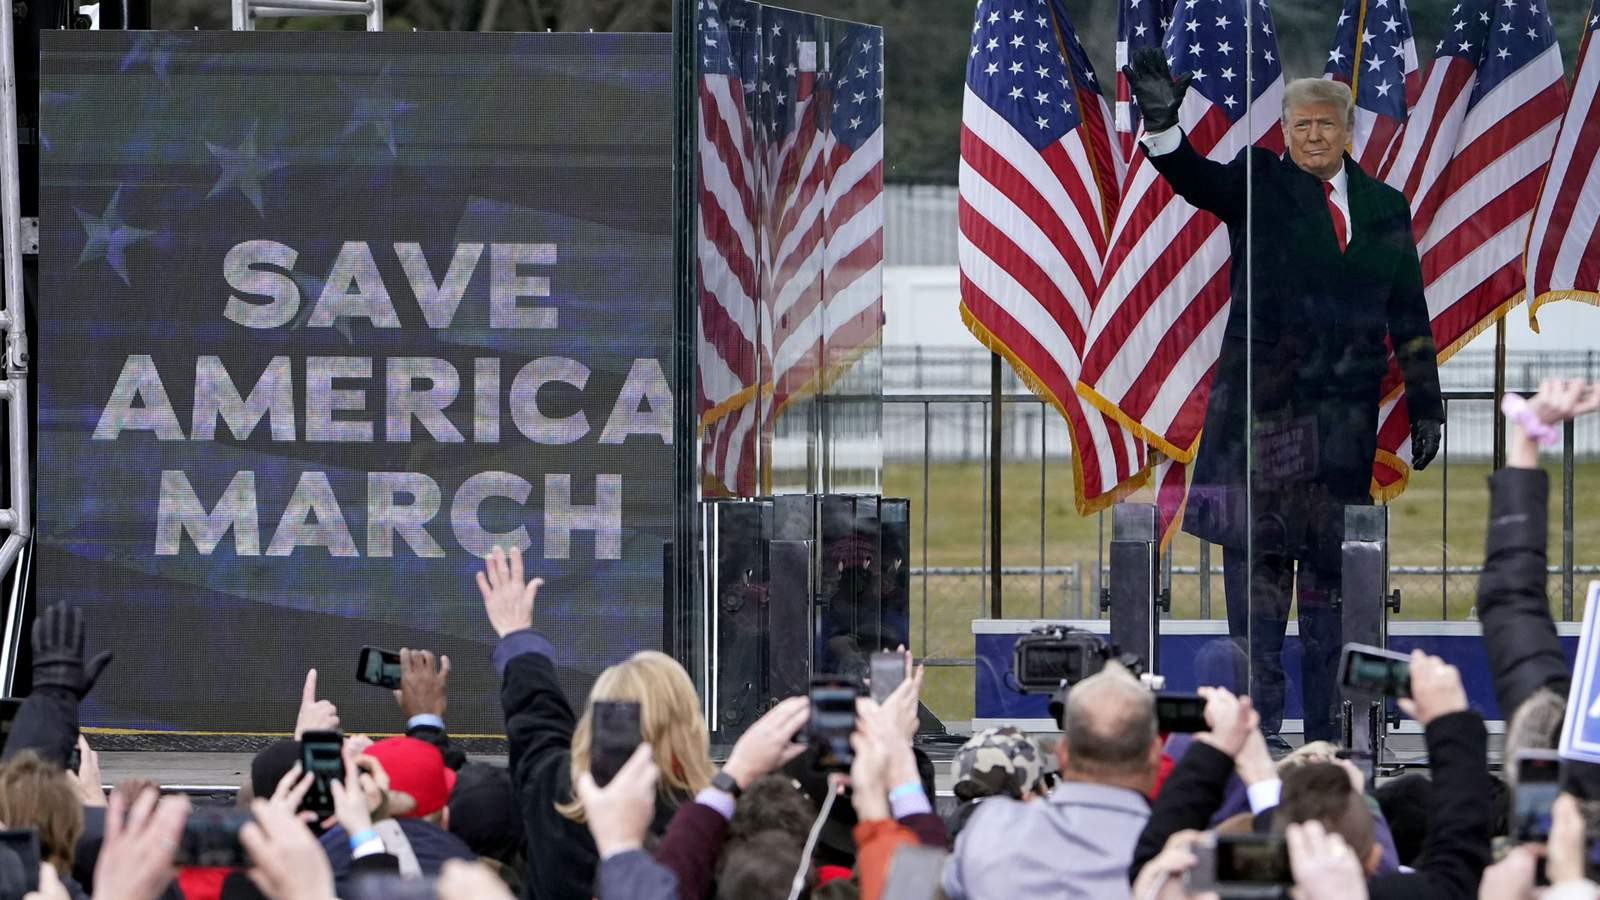 President Trump waves to supporters at the Save America March outside the White House. (AP photo)